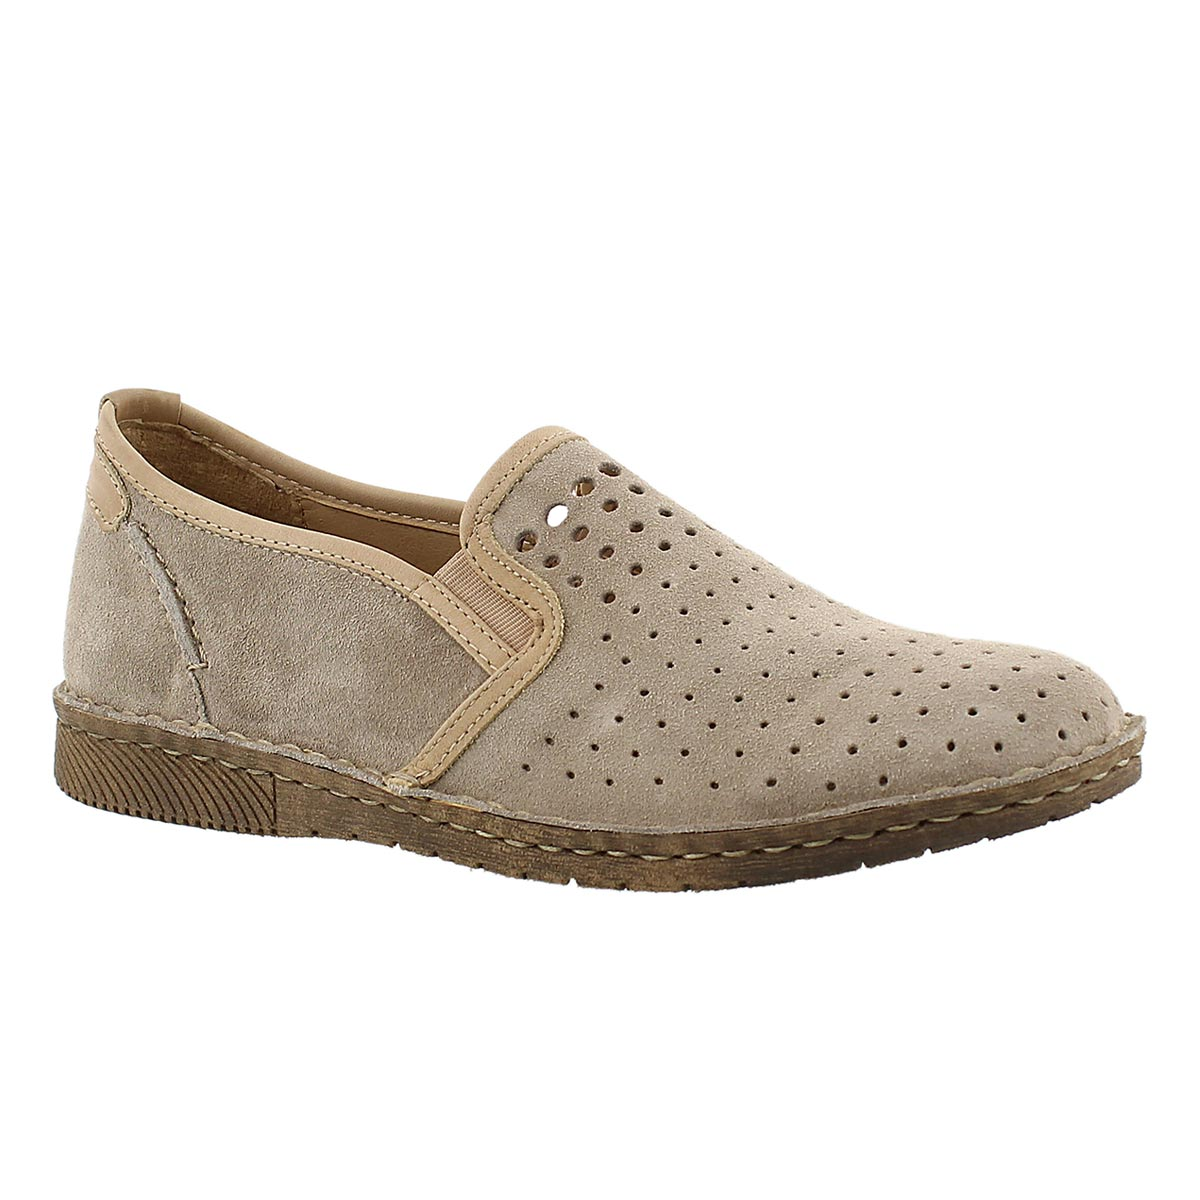 Lds Sofie 11 linen slip on casual shoe